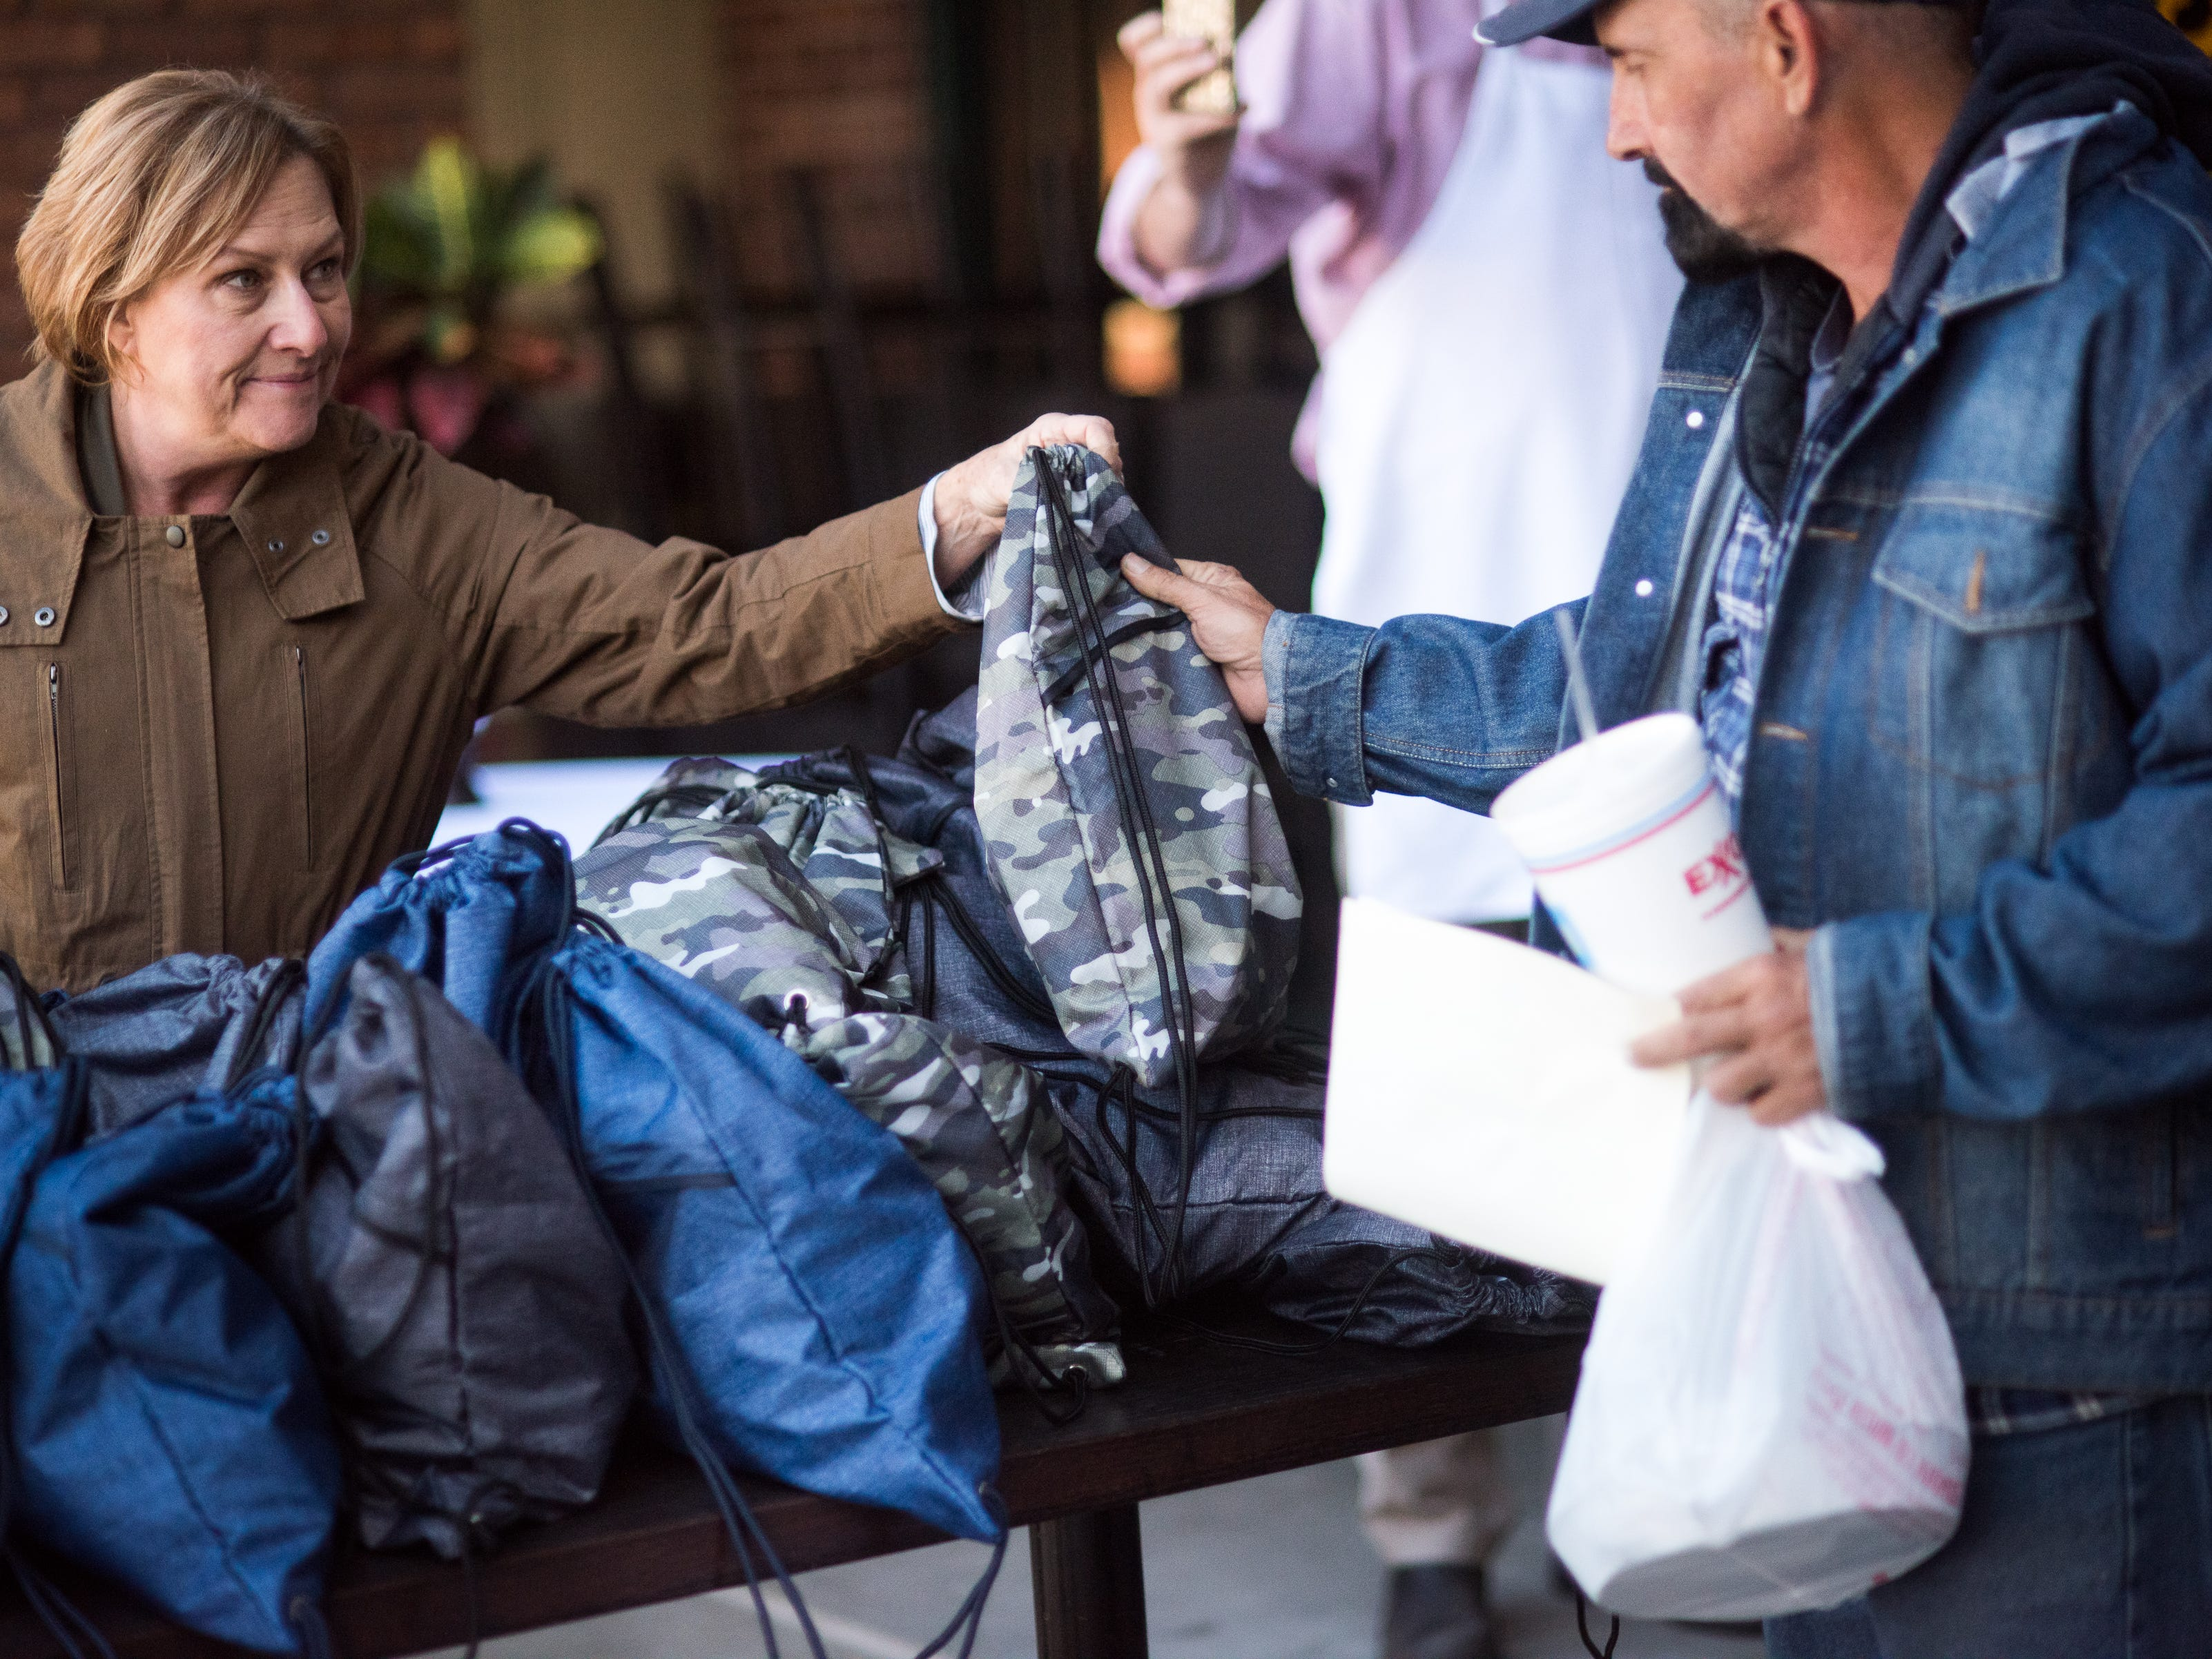 After enjoying a Thanksgiving feast at the annual Donna's Table event at Napa Cafe, homeless attendees receive a care package with essentials.